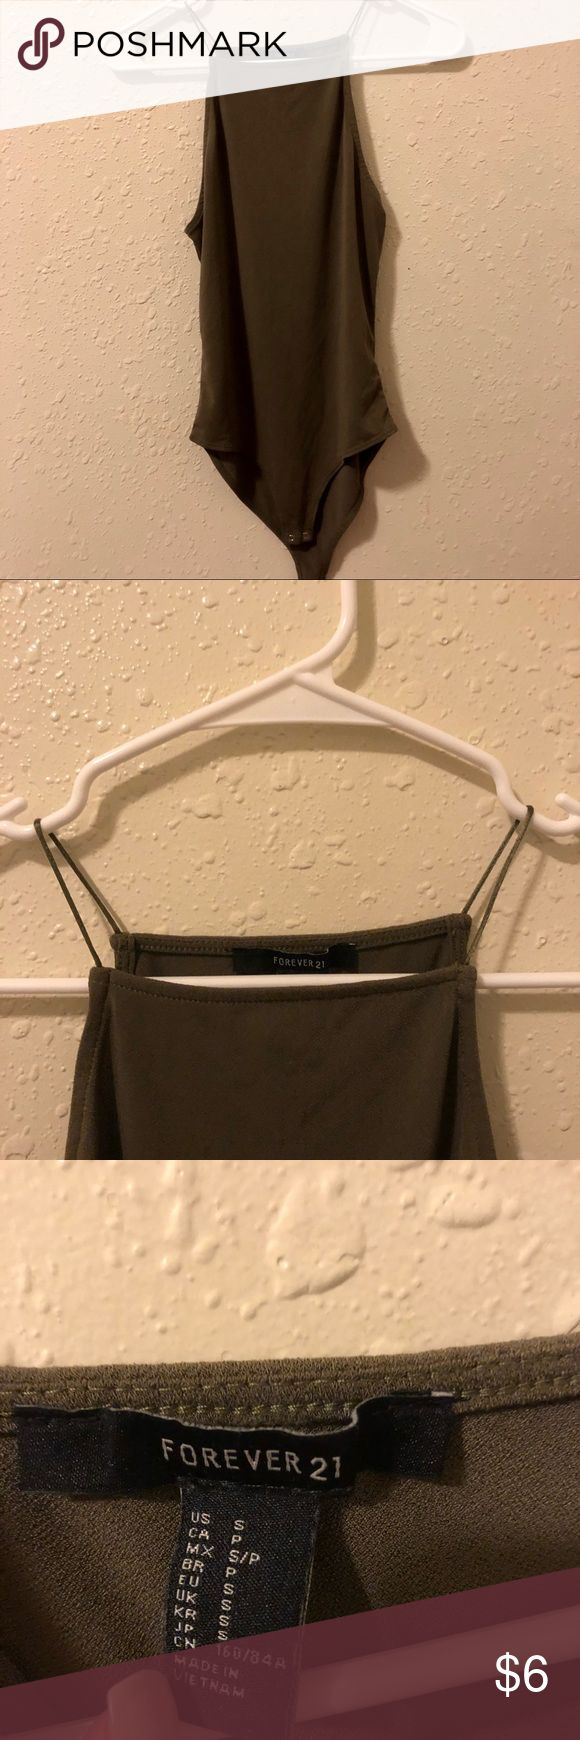 Forever 21 Olive Green bodysuit size S Forever 21 Olive Green bodysuit size S. In excellent used condition. Perfect for tucking into jeans for a night out. Forever 21 Tops Camisoles